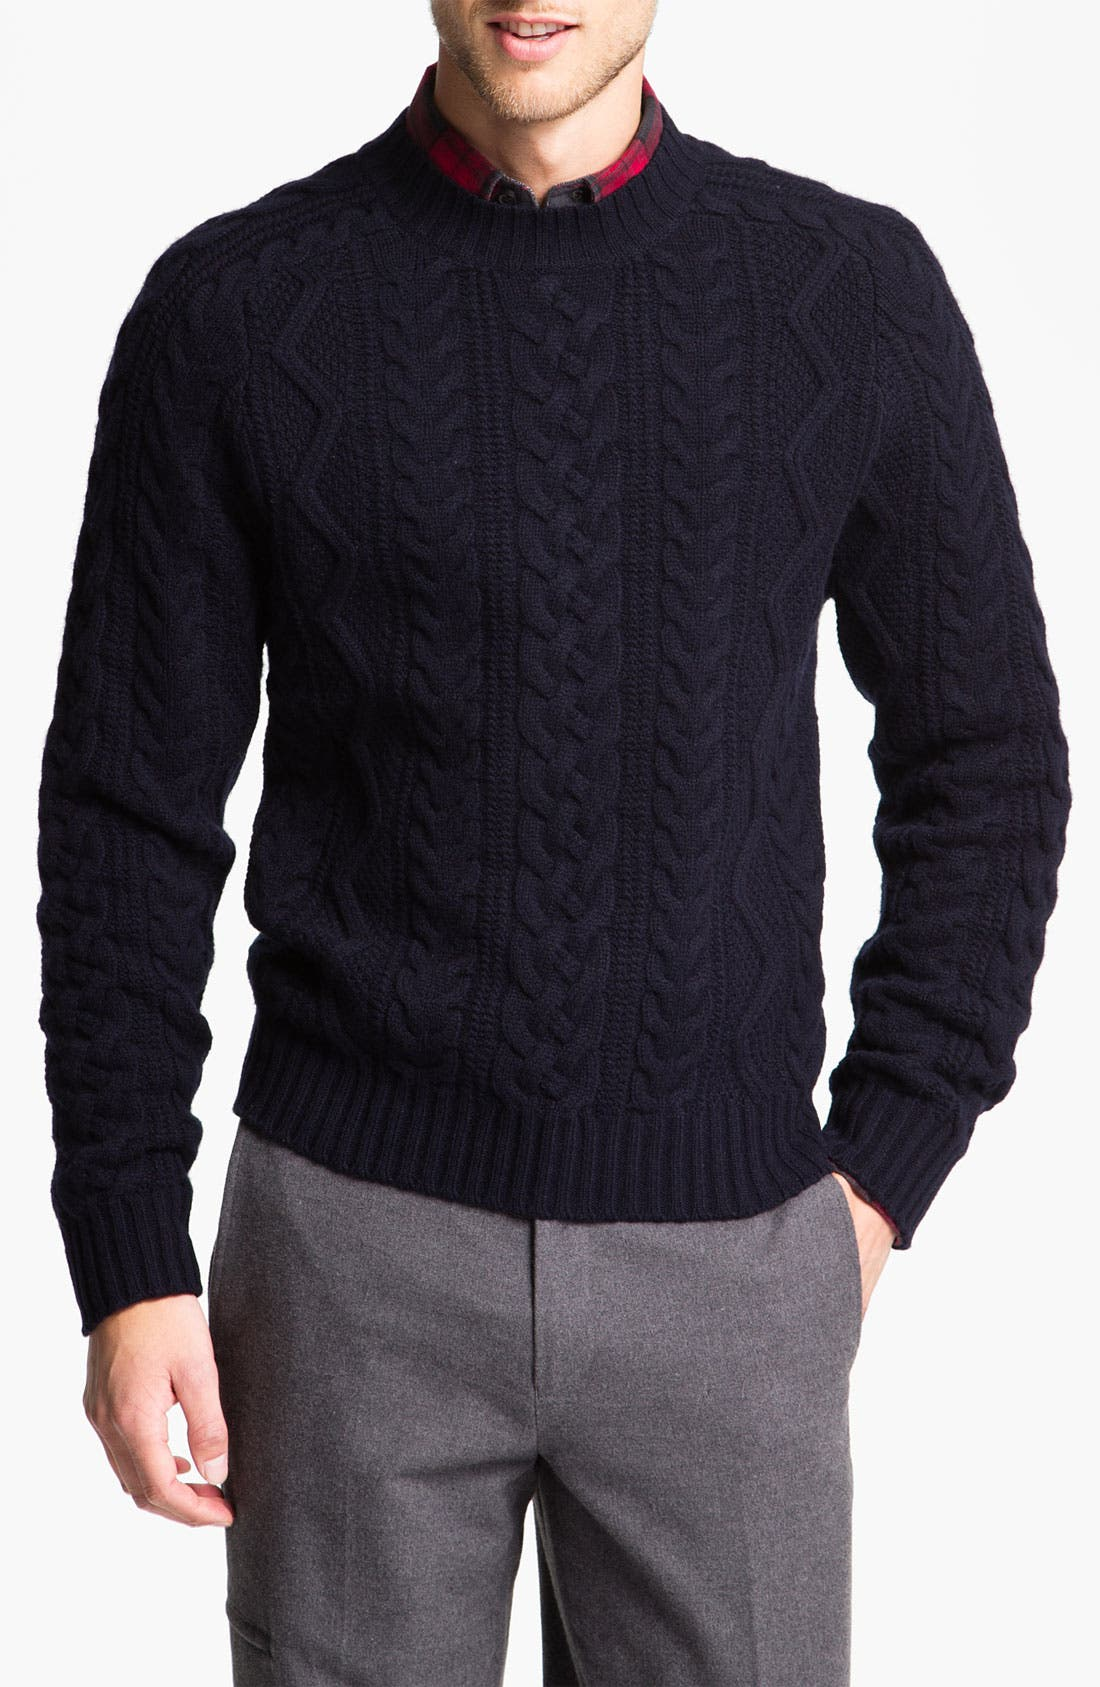 Alternate Image 1 Selected - Brooks Brothers 'Fisherman' Crewneck Sweater